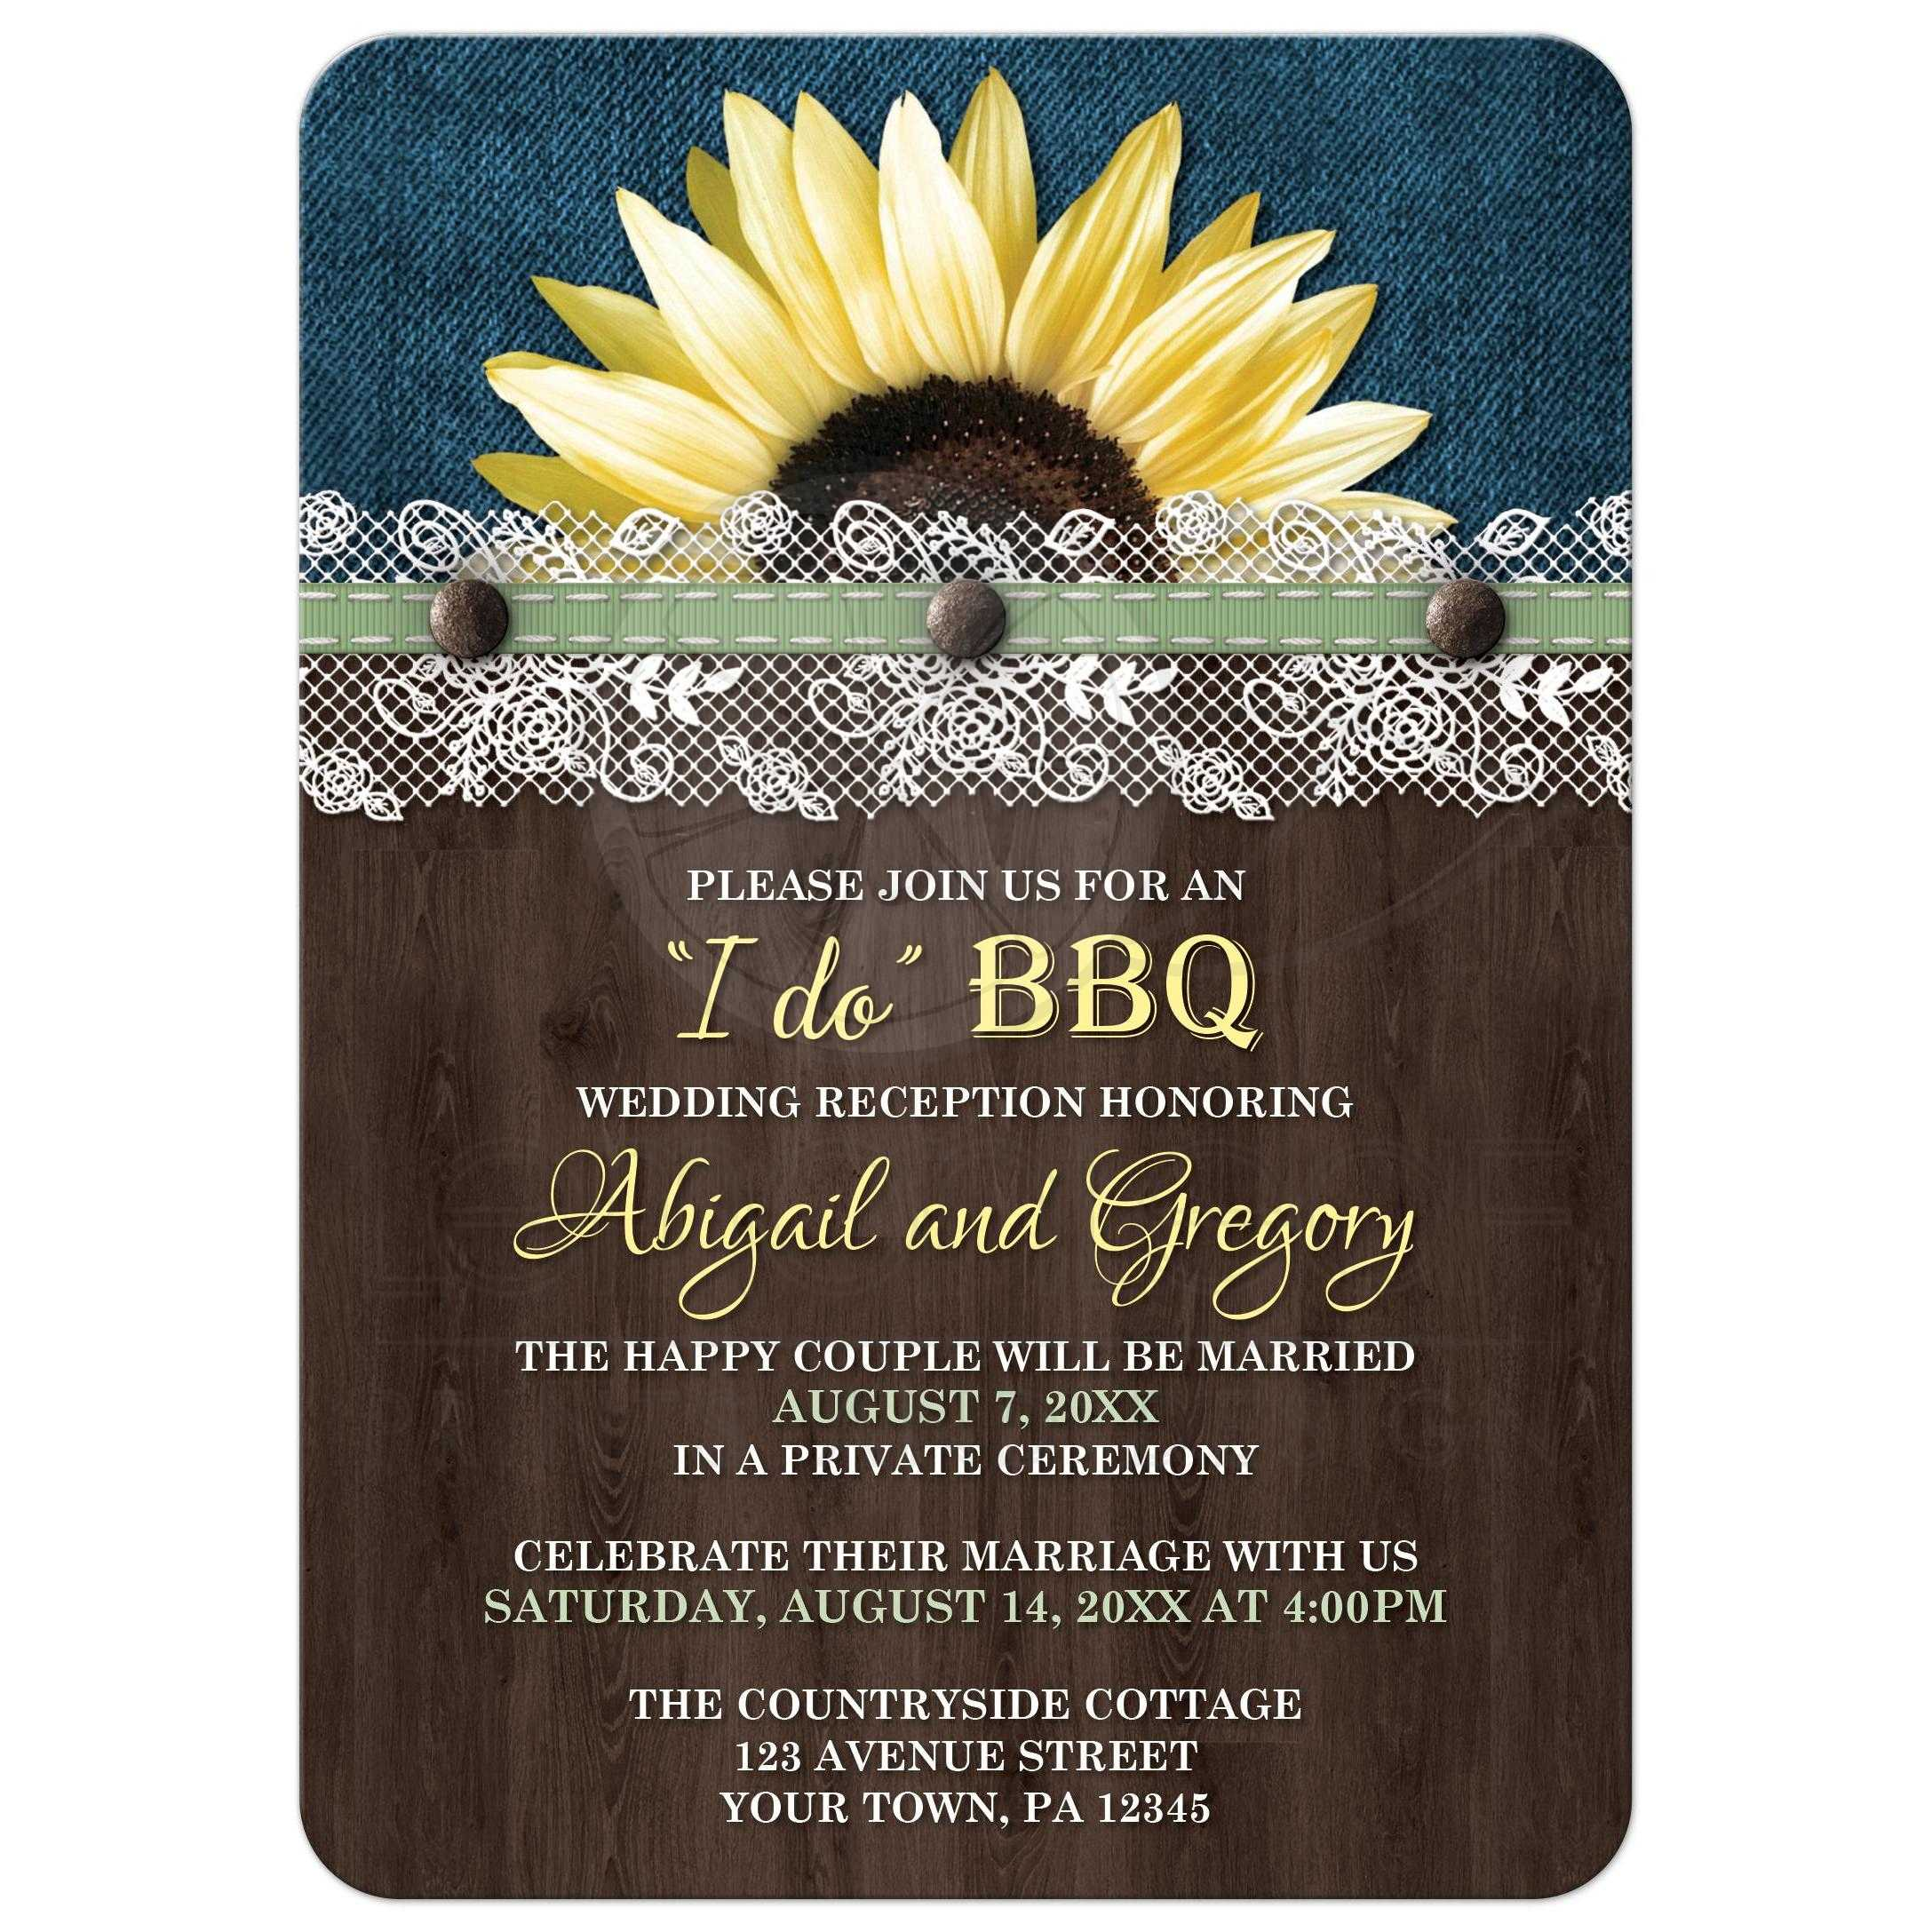 i do bbq wedding invitations - Targer.golden-dragon.co